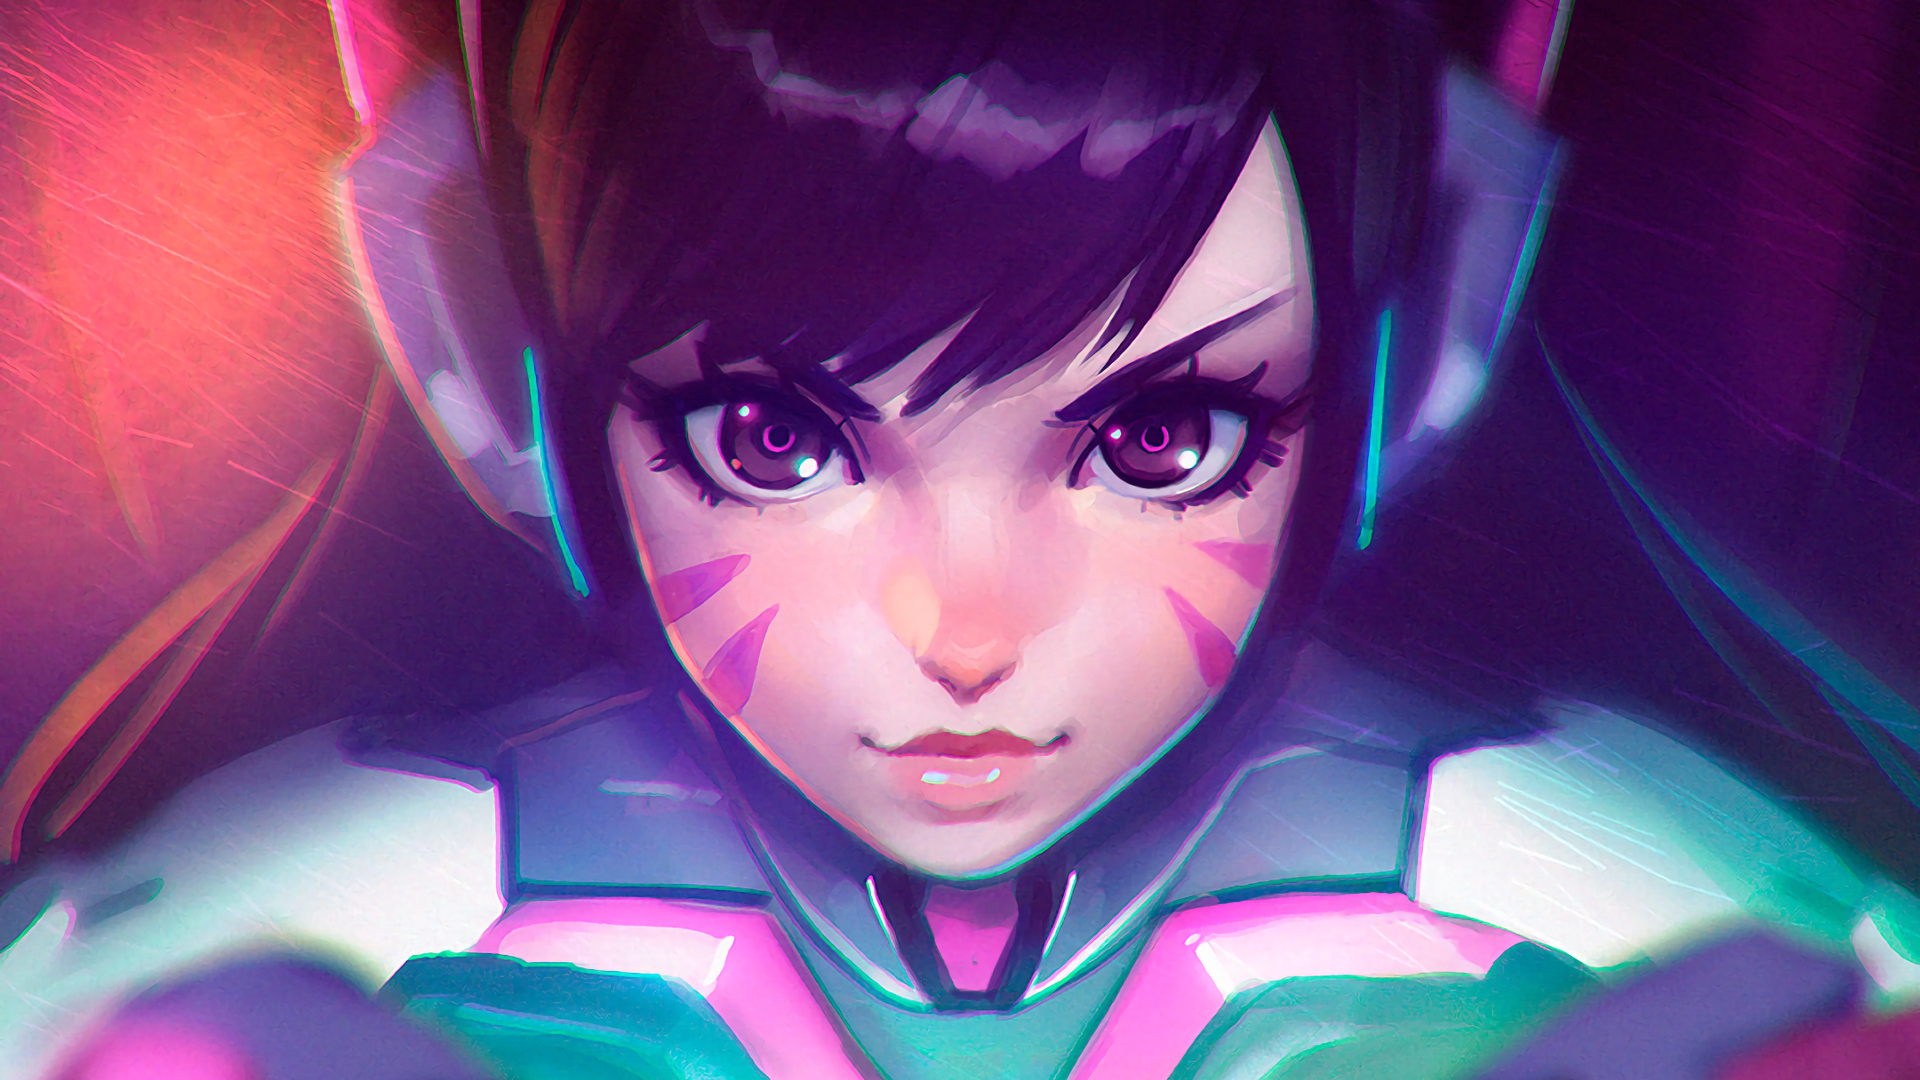 274 d overwatch hd wallpapers background images wallpaper abyss voltagebd Images